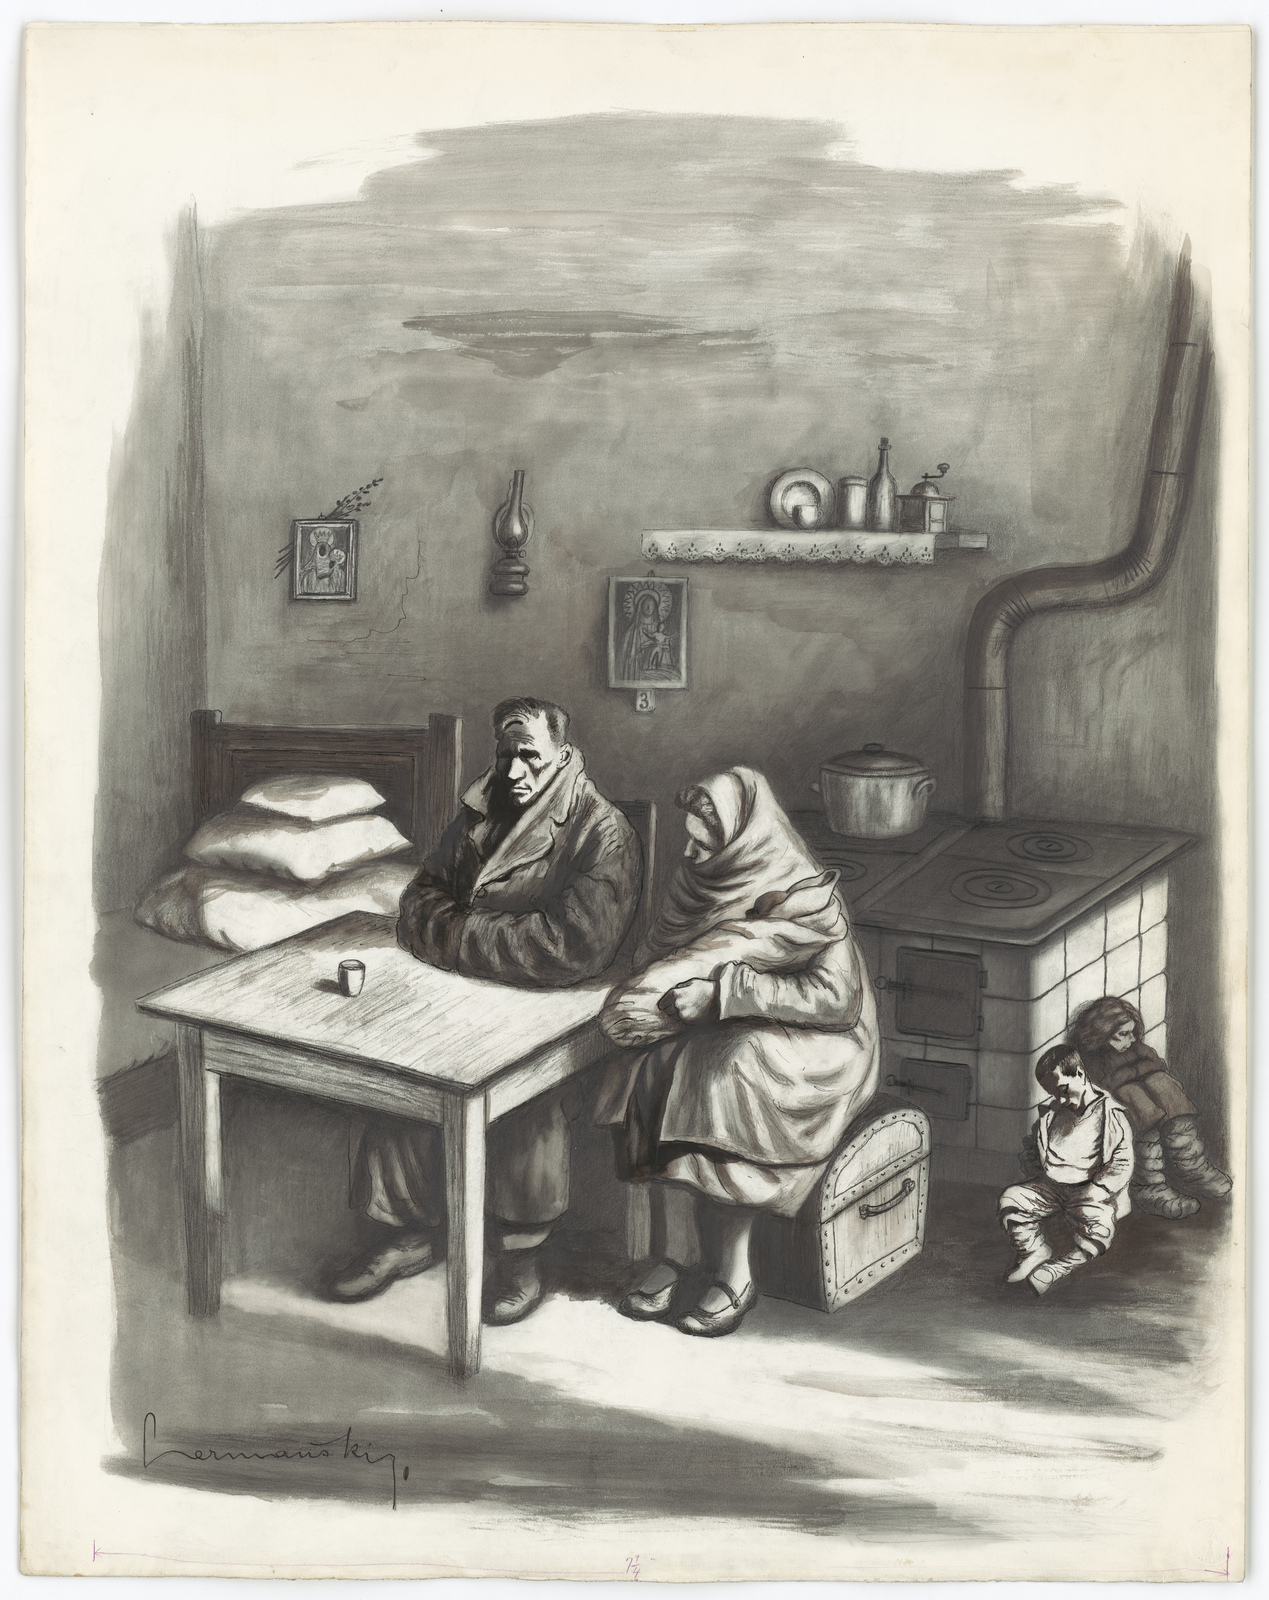 [Family man, woman, two children, and a baby wrapped up to keep warm.] [Hermansky]